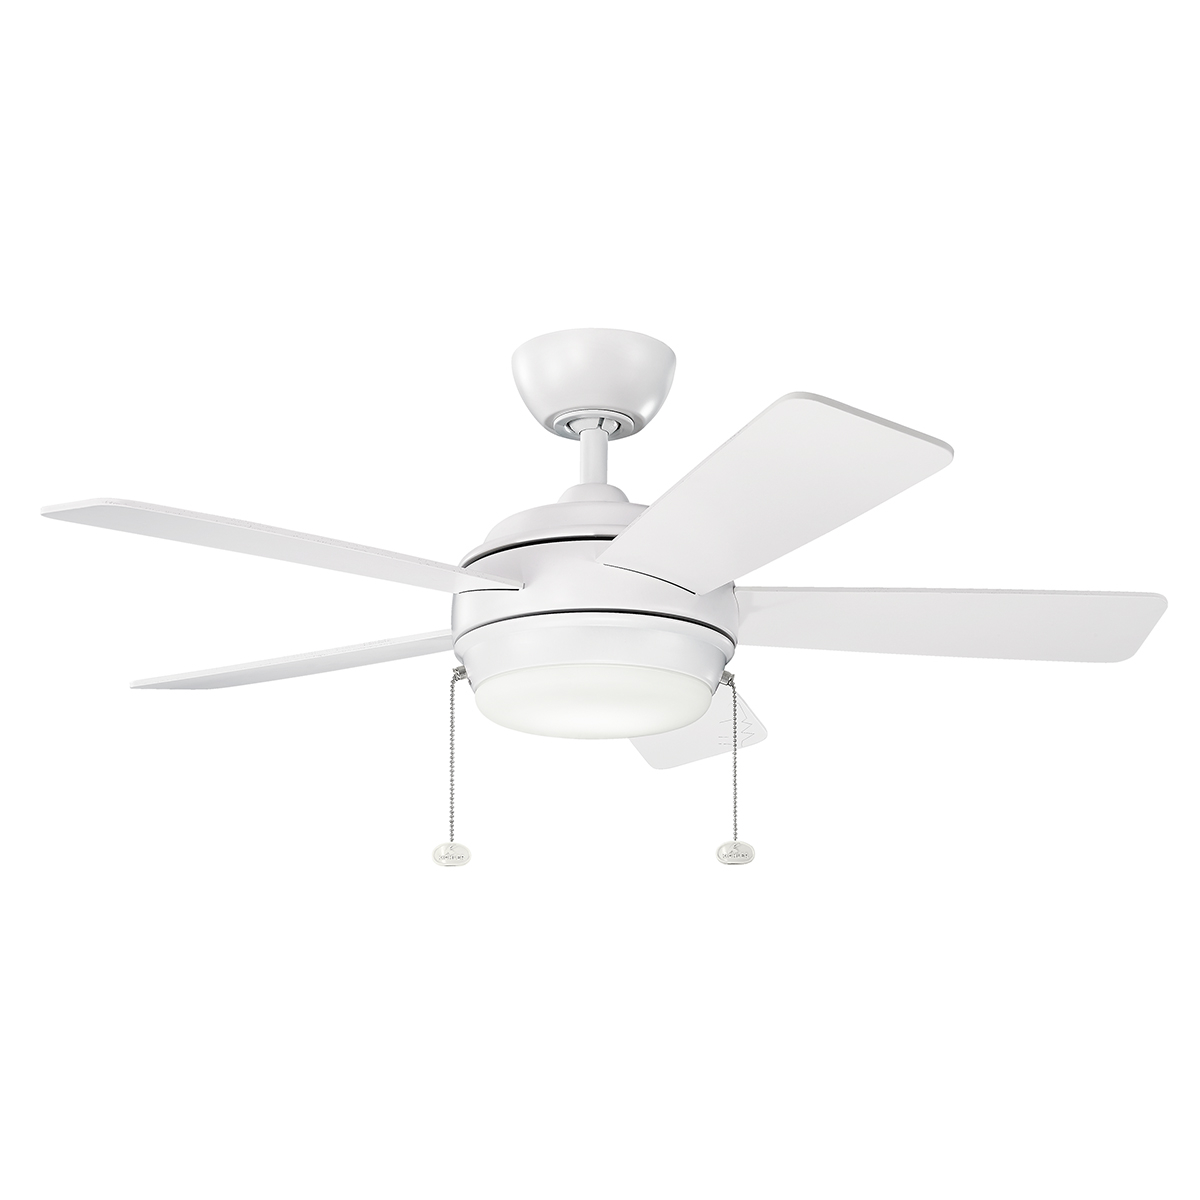 42 inchCeiling Fan from the Starkk collection by Kichler 330171MWH